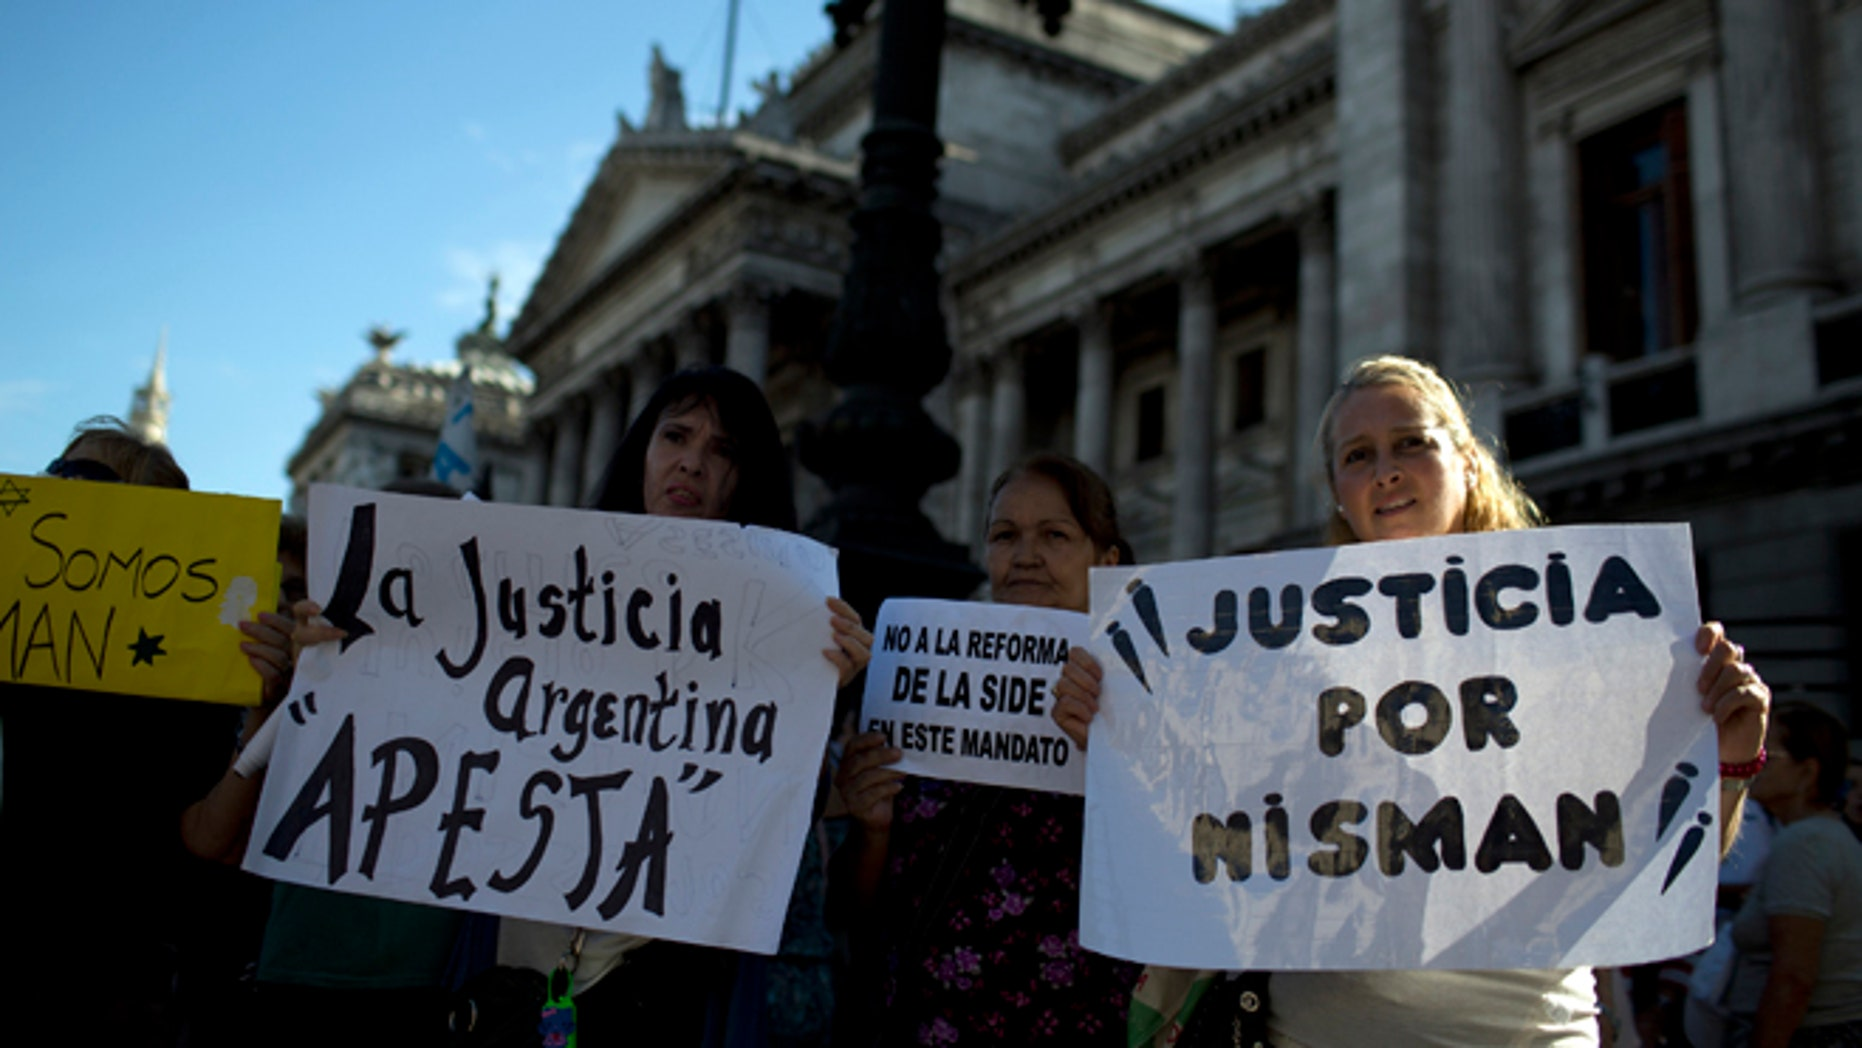 """Women holds sign that reads in Spanish; """"Argentine justice stinks,"""" second left, """"and """"Justice for Nisman,"""" right, during a march for justice and against impunity in the case of the mysterious death of late prosecutor Alberto Nisman, in Buenos Aires, Argentina, Wednesday, Feb. 4, 2015.  Investigators examining the death of Nisman, who accused Argentine President Cristina Fernandez of agreeing to shield the alleged masterminds of a 1994 terror bombing, said Tuesday, they have found a draft document he wrote requesting her arrest. (AP Photo/Rodrigo Abd)"""